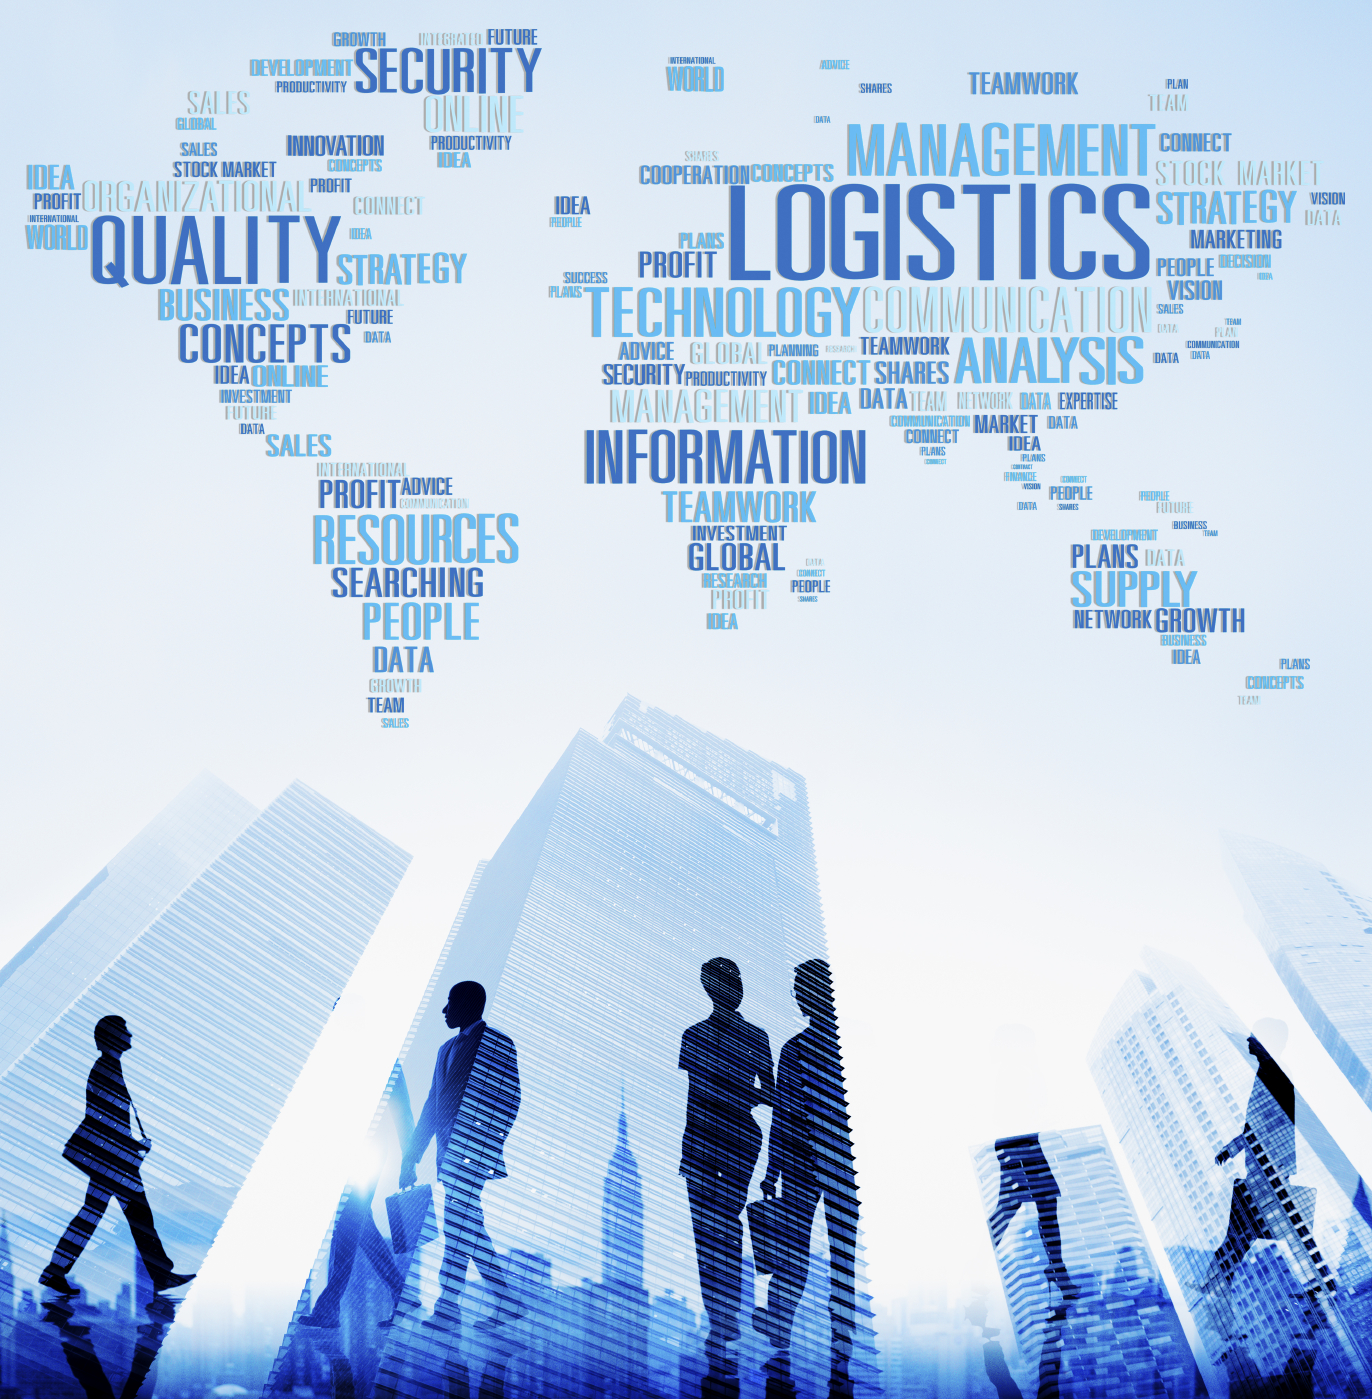 Transportation Management Takes a Cue From CRM to Drive Value